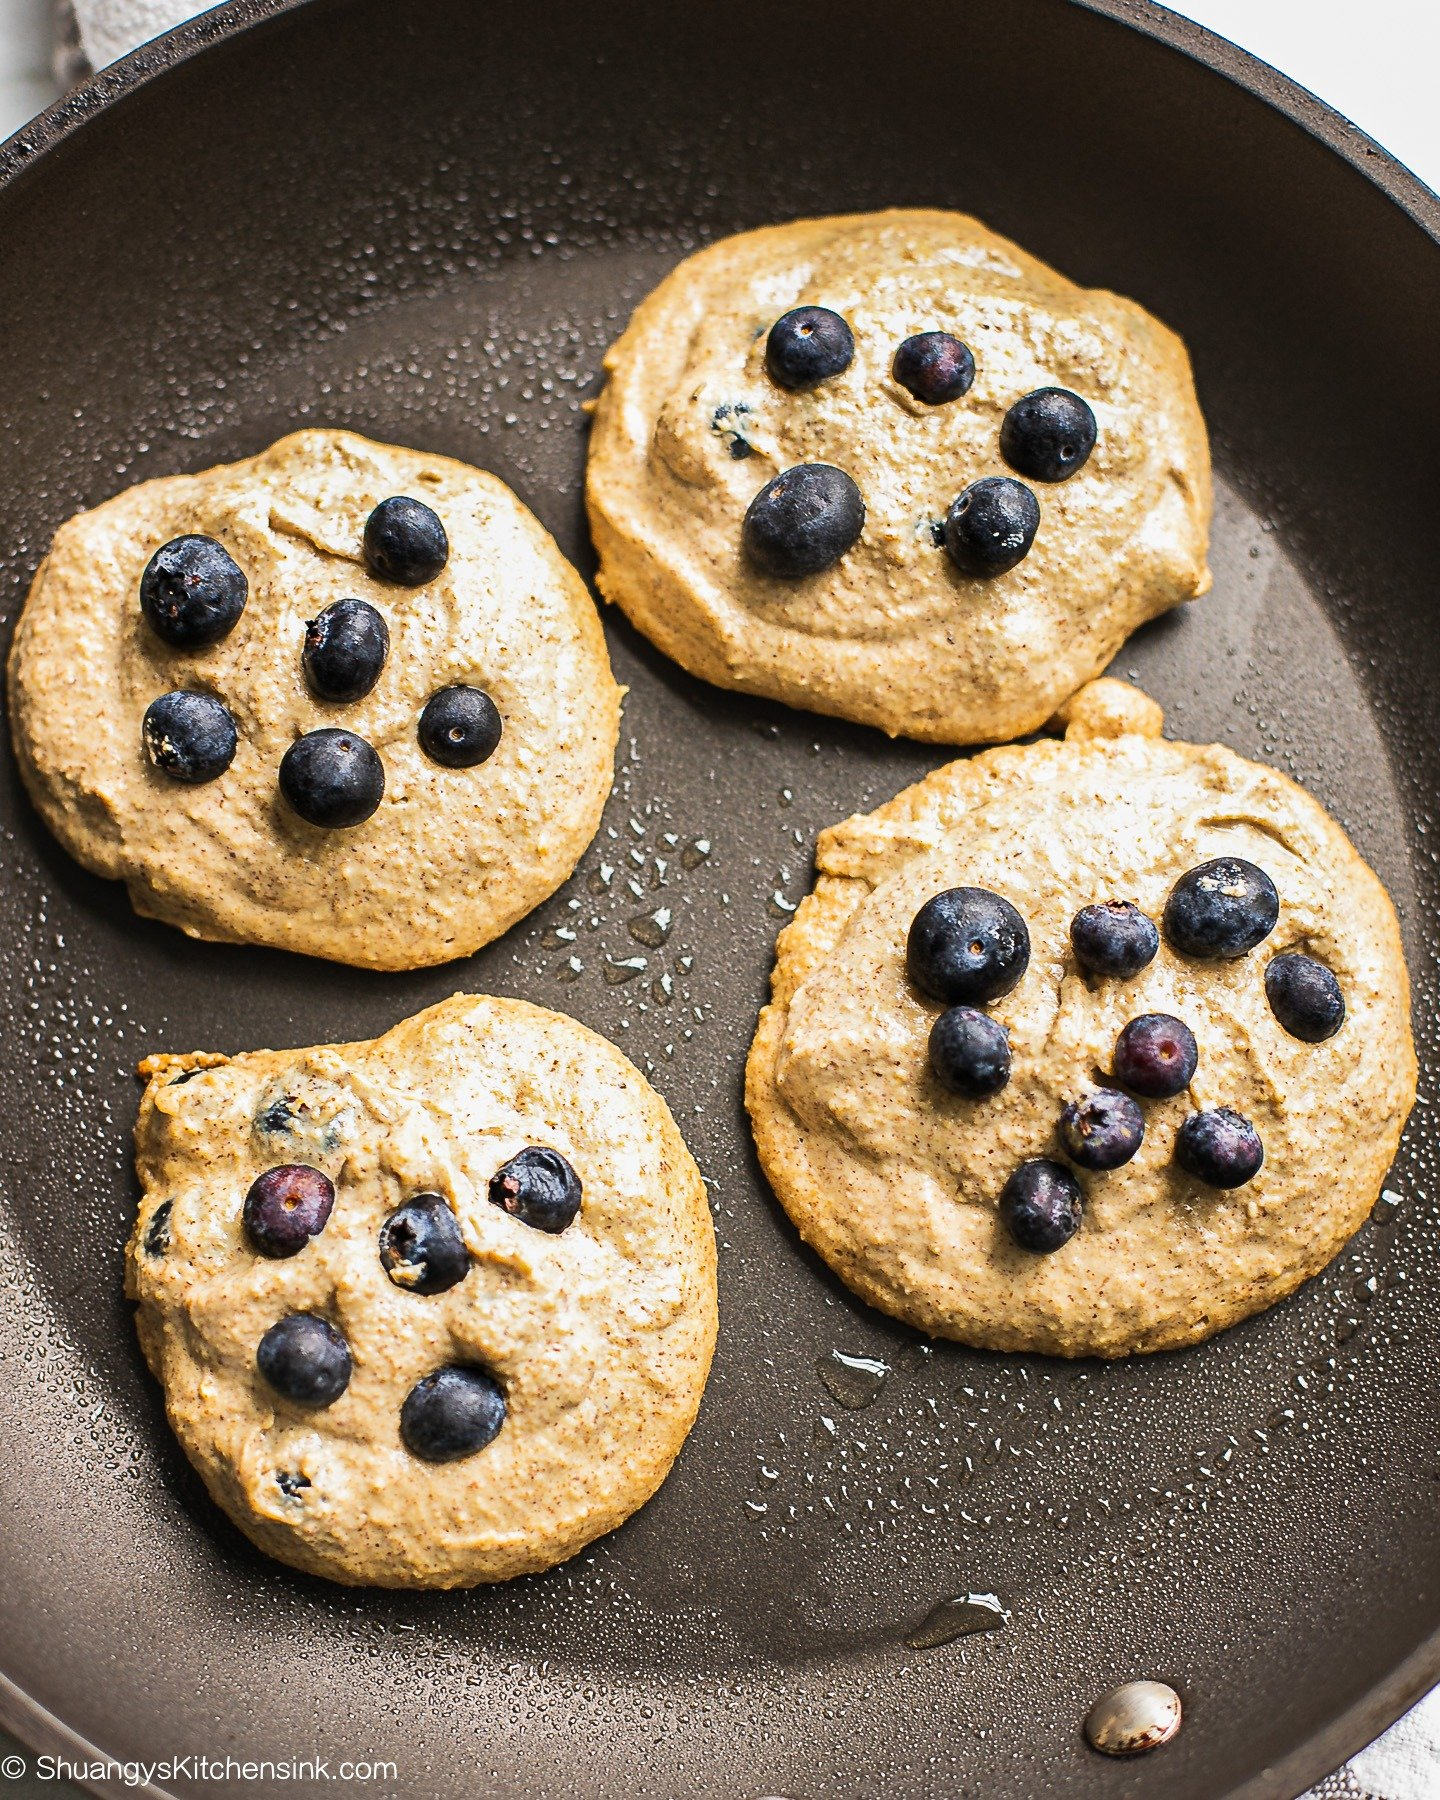 Vegan oatmeal pancakes are heating on a frying pan. There are some extra fresh blueberries on top.